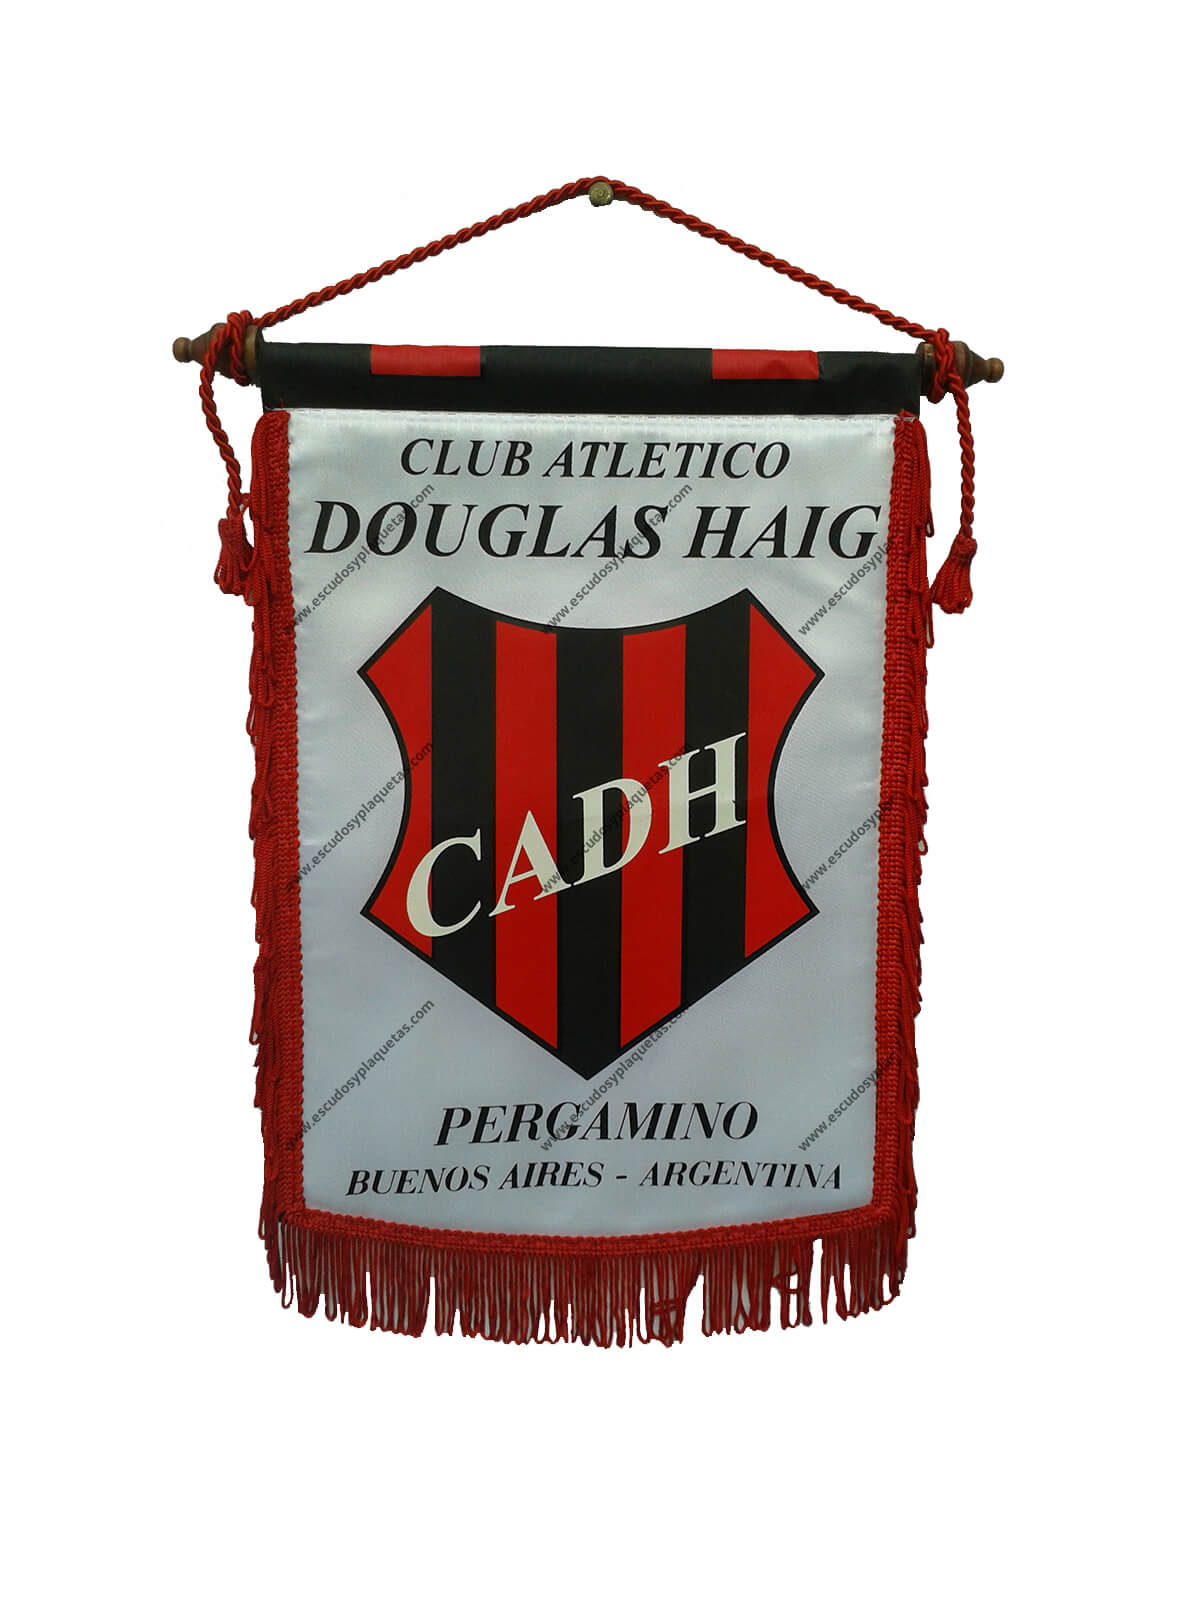 Estandarte Club Atletico Douglas Haig